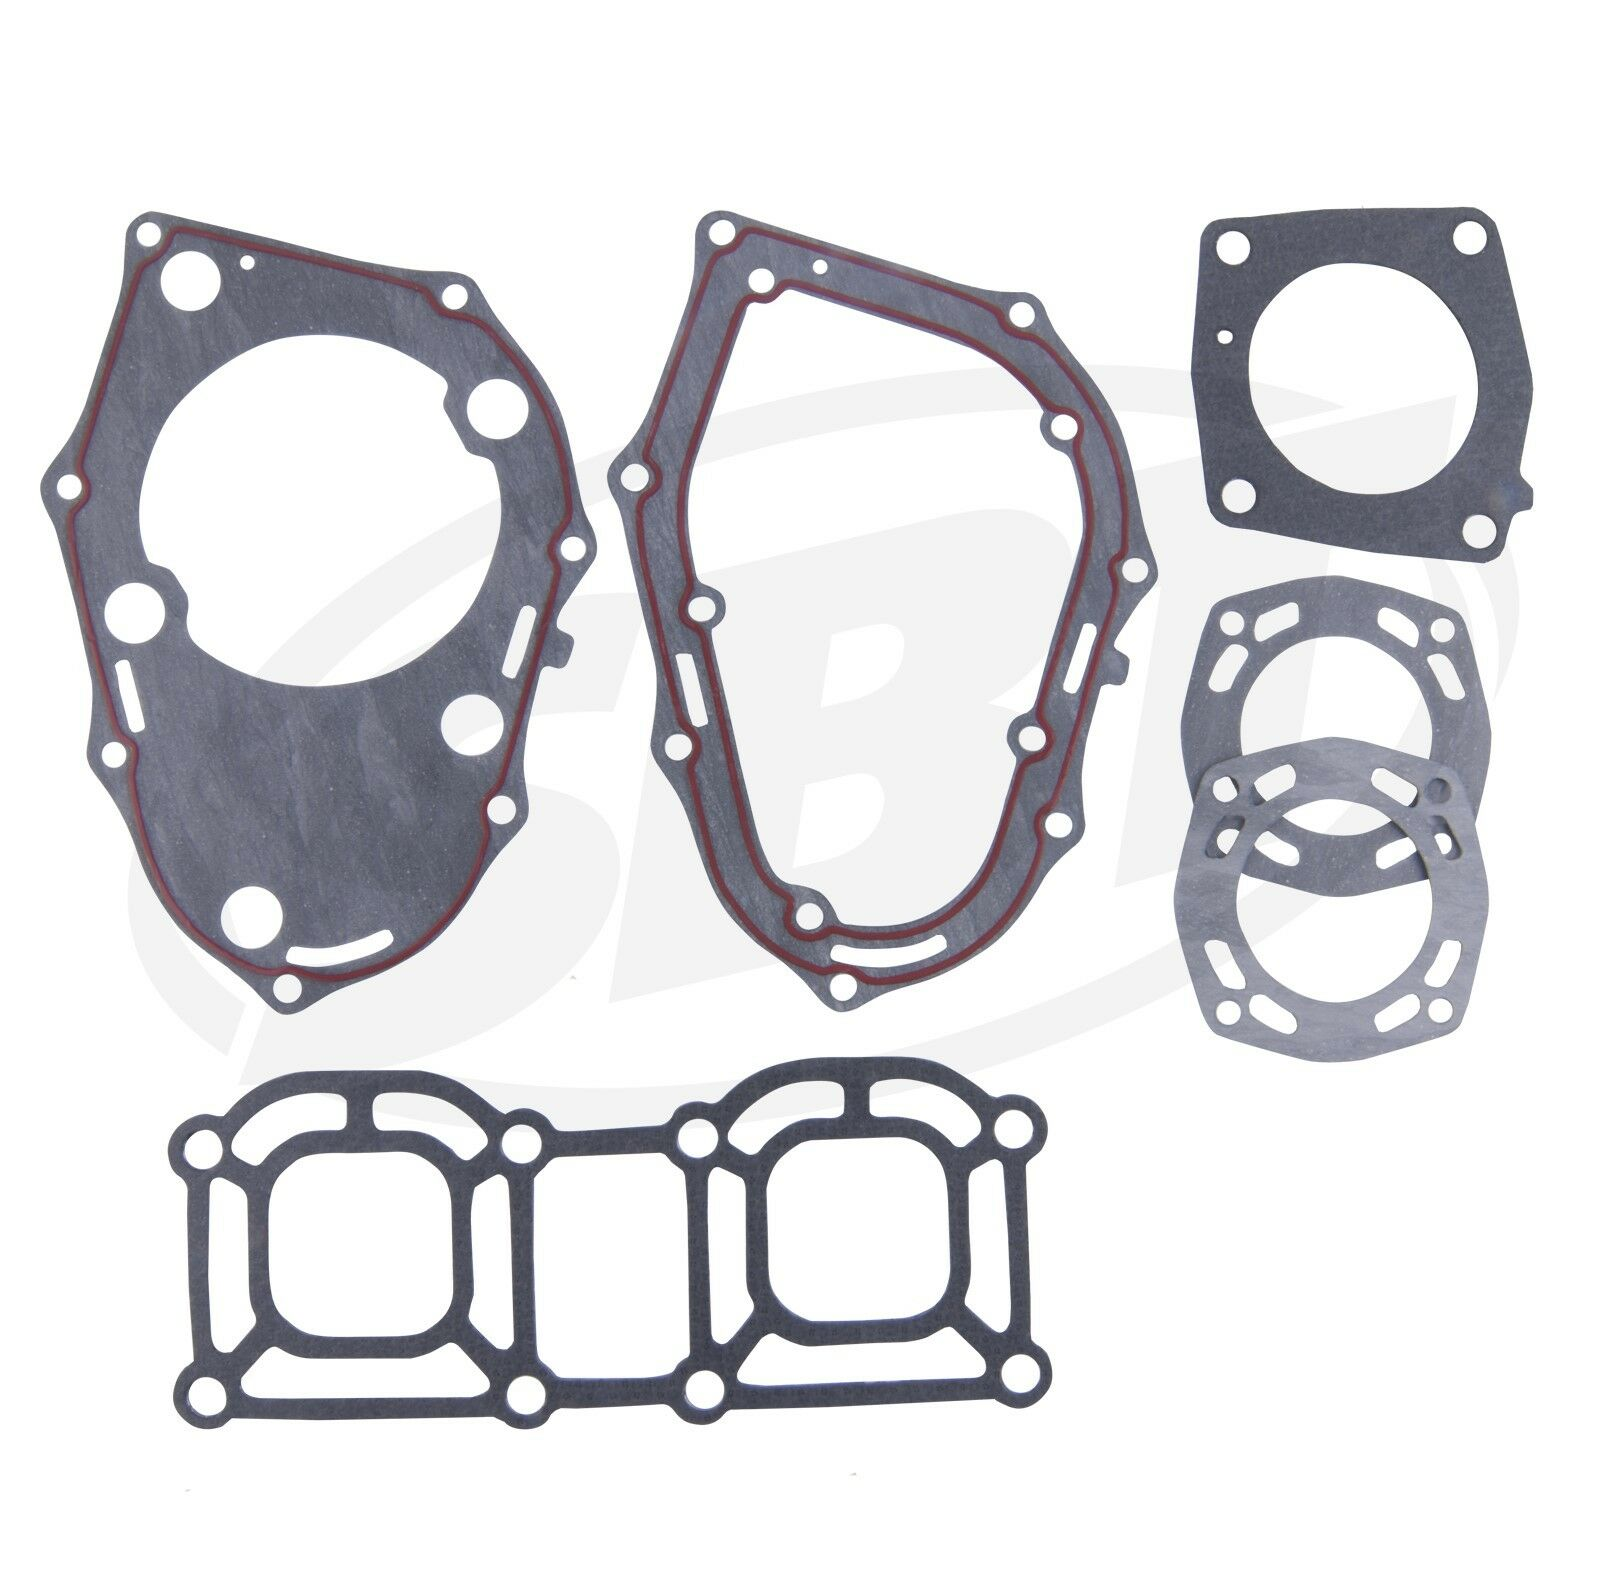 Yamaha Exhaust Gasket Kit 650 Wave Runner III VXR Super Jet *except LX models*